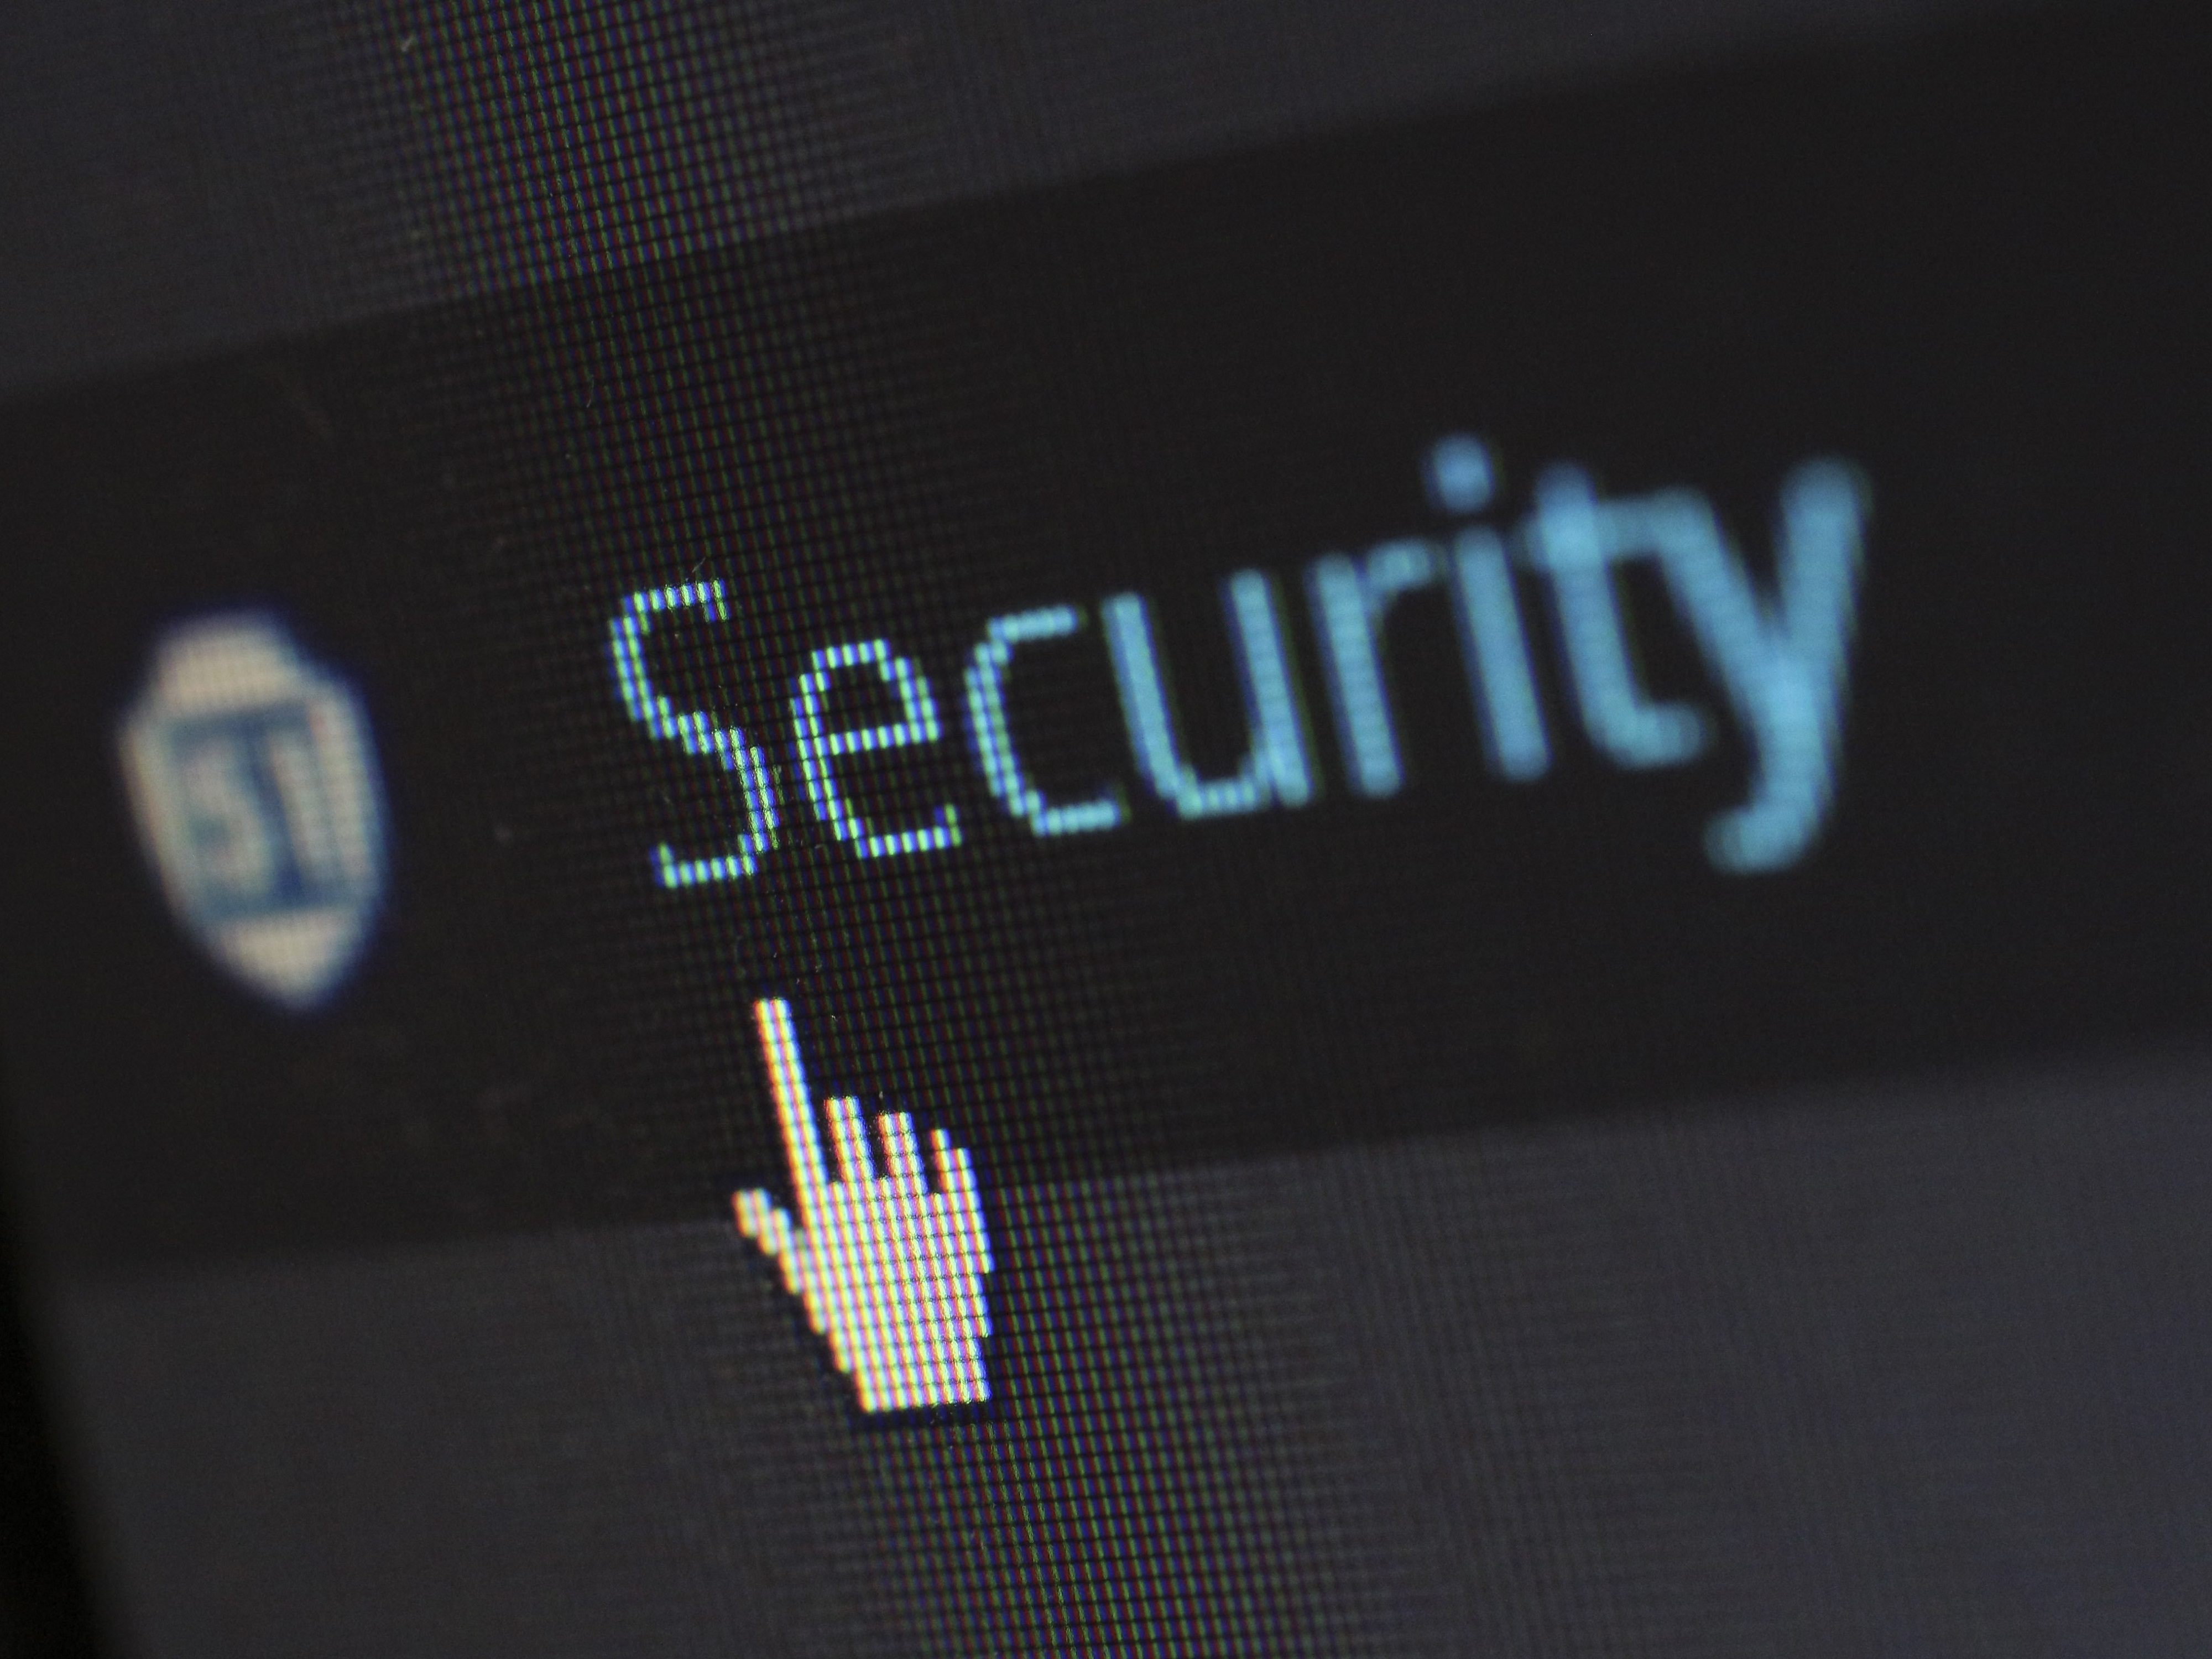 Cyberattacks are growing fast. Image credit: Pixabay/Pexels